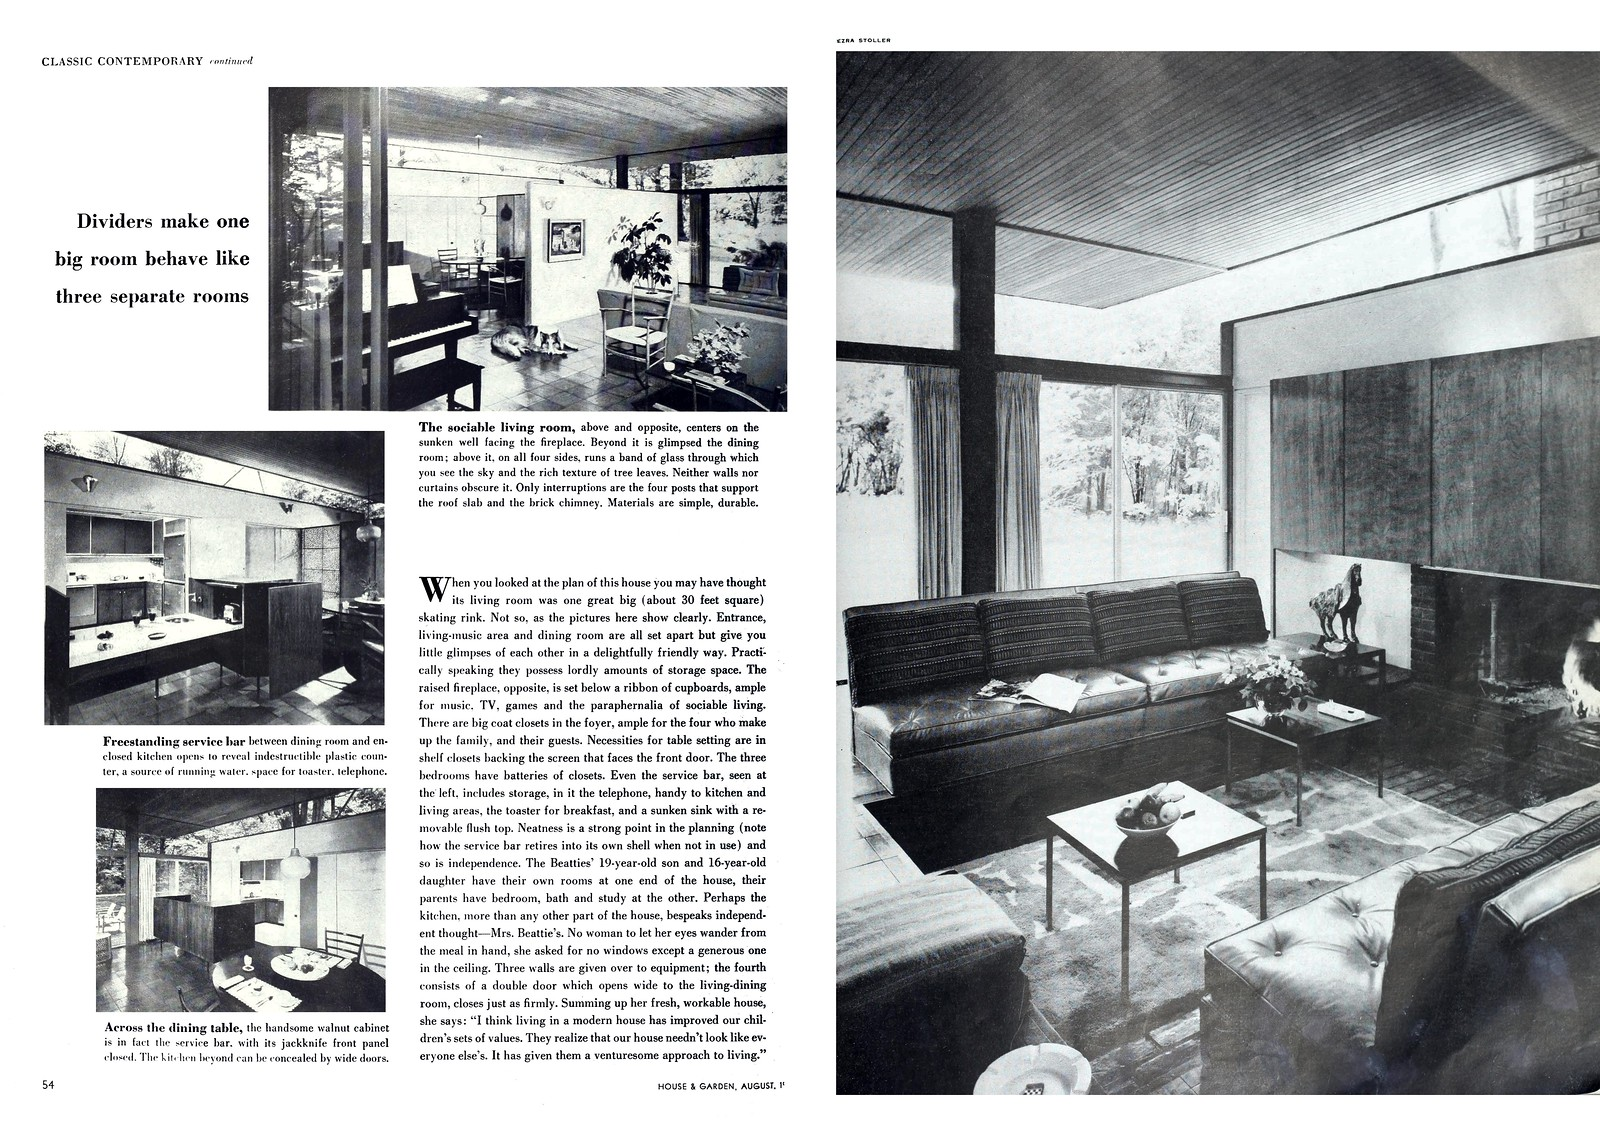 Ulrich Franzen - Beattie Residence - Rye, New York - 1958 (2 of 2)